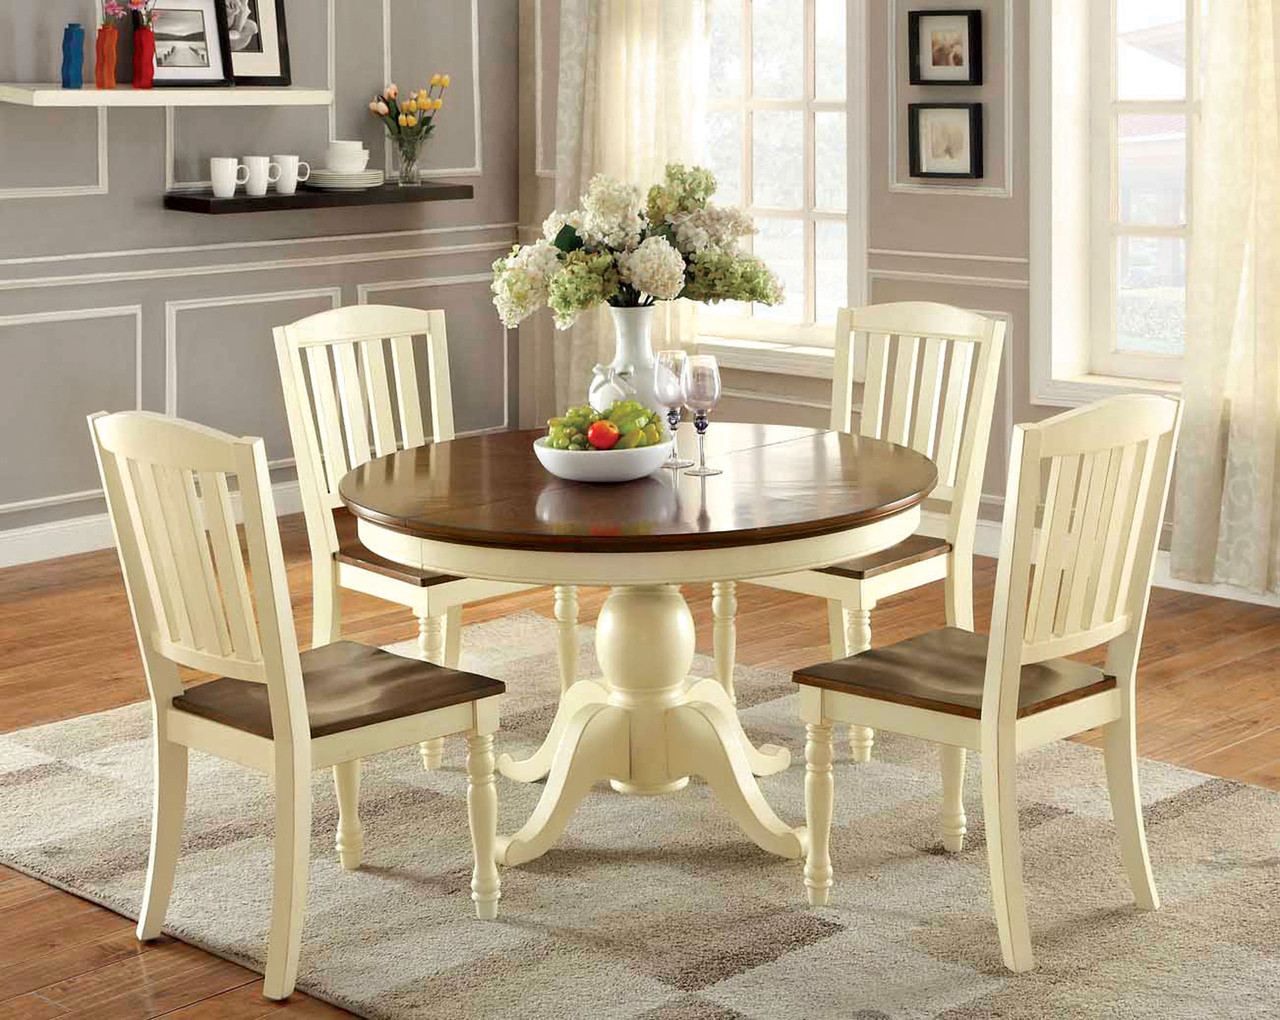 Oval vintage white cherry dining table set · round vintage white cherry dining table set